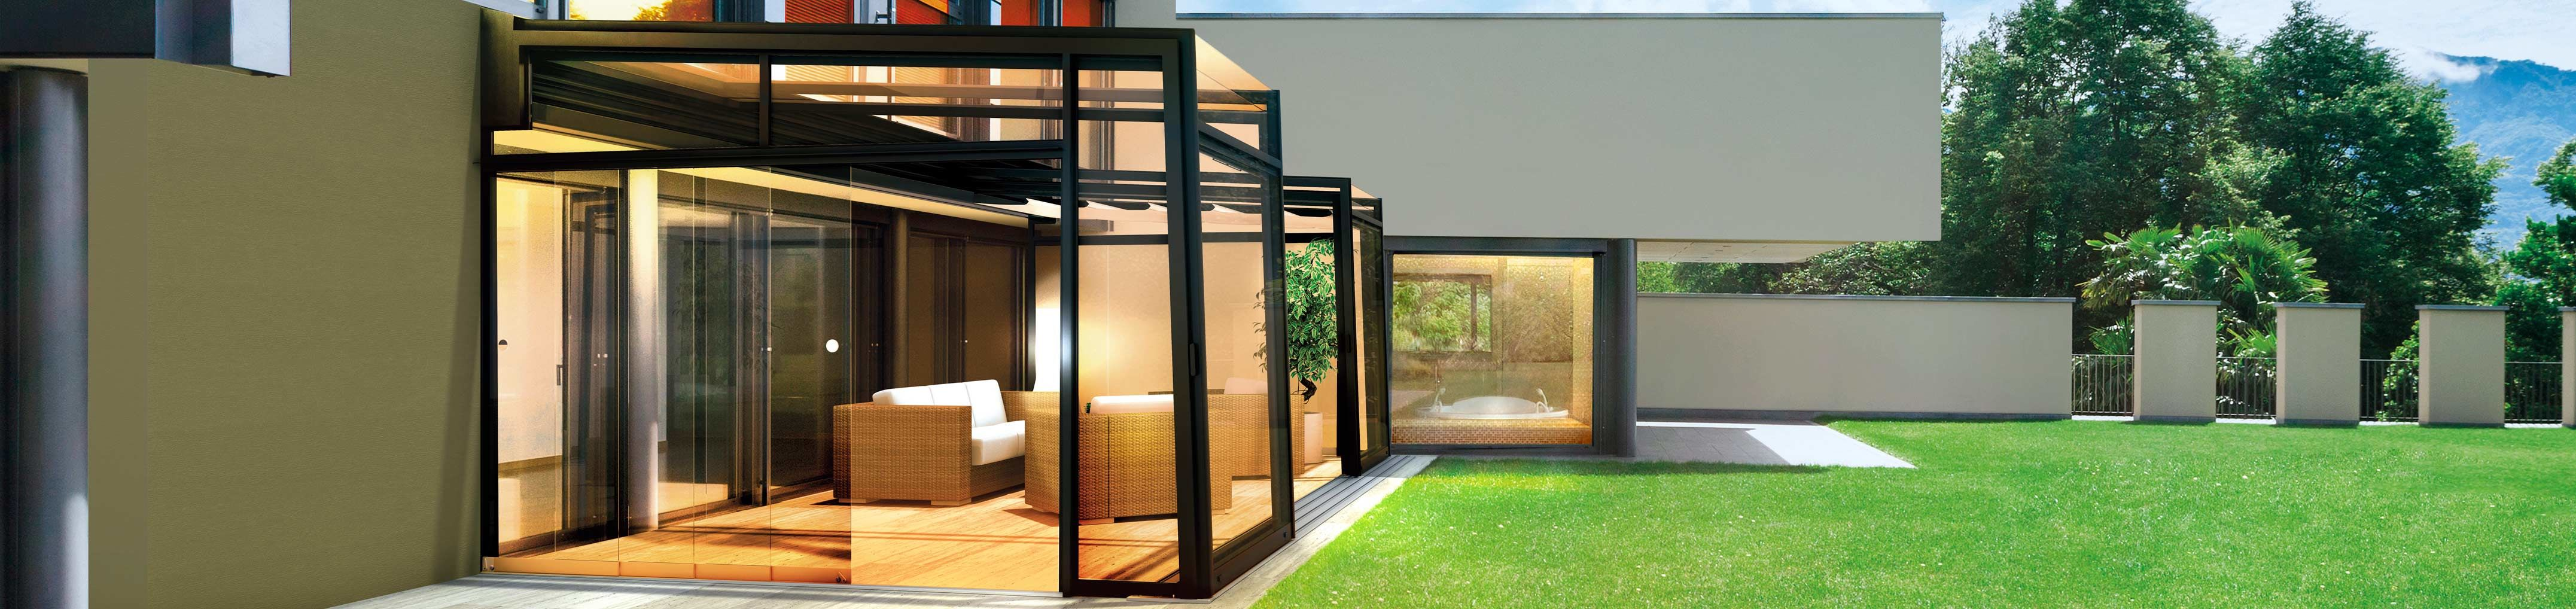 Semi-opened retractable patio enclosure CORSO Ultima